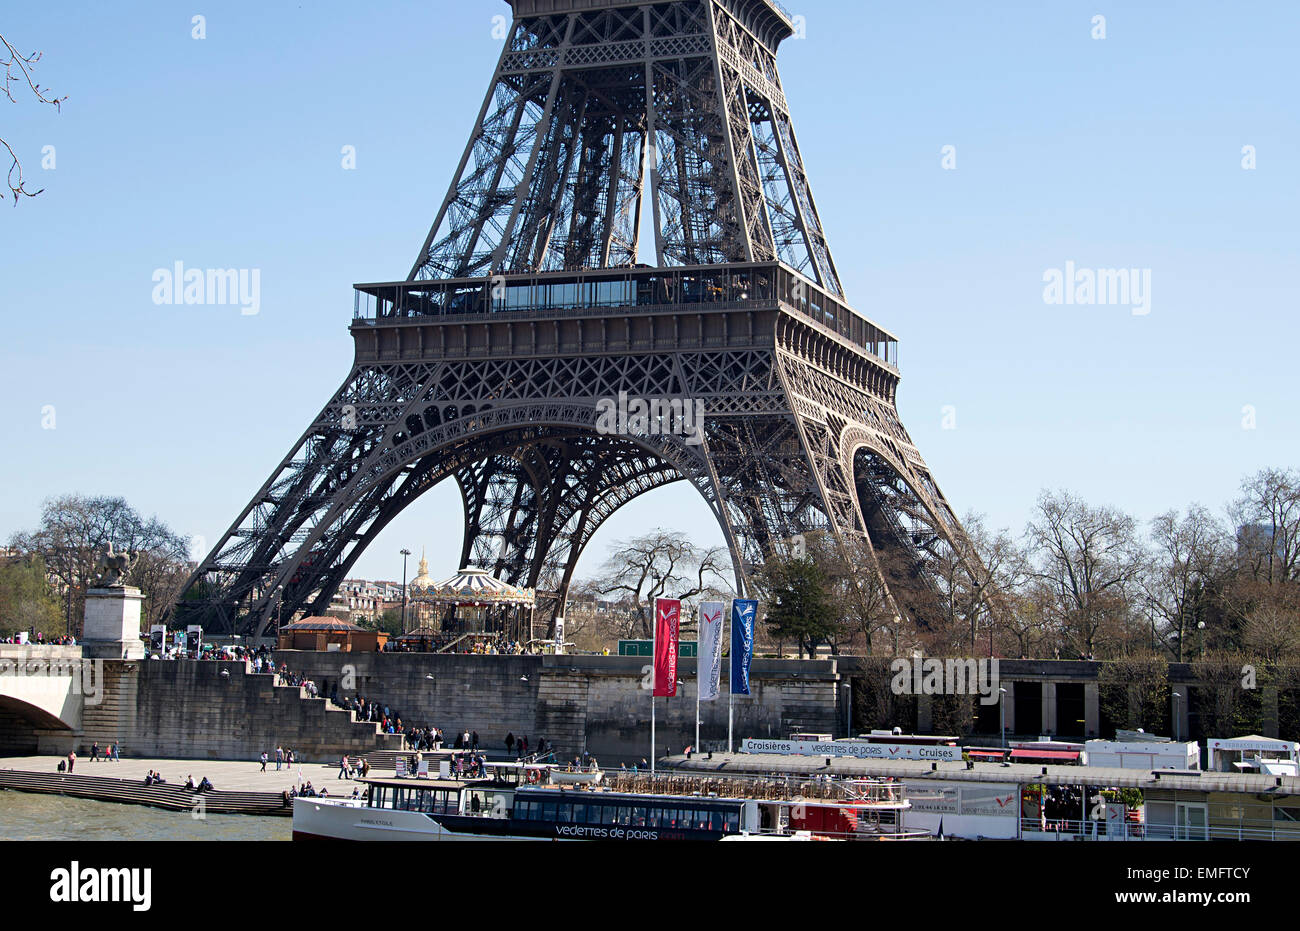 Paris Eiffel Tower attractions for visitors cruisers, motor launches, cruises, carousel - Stock Image